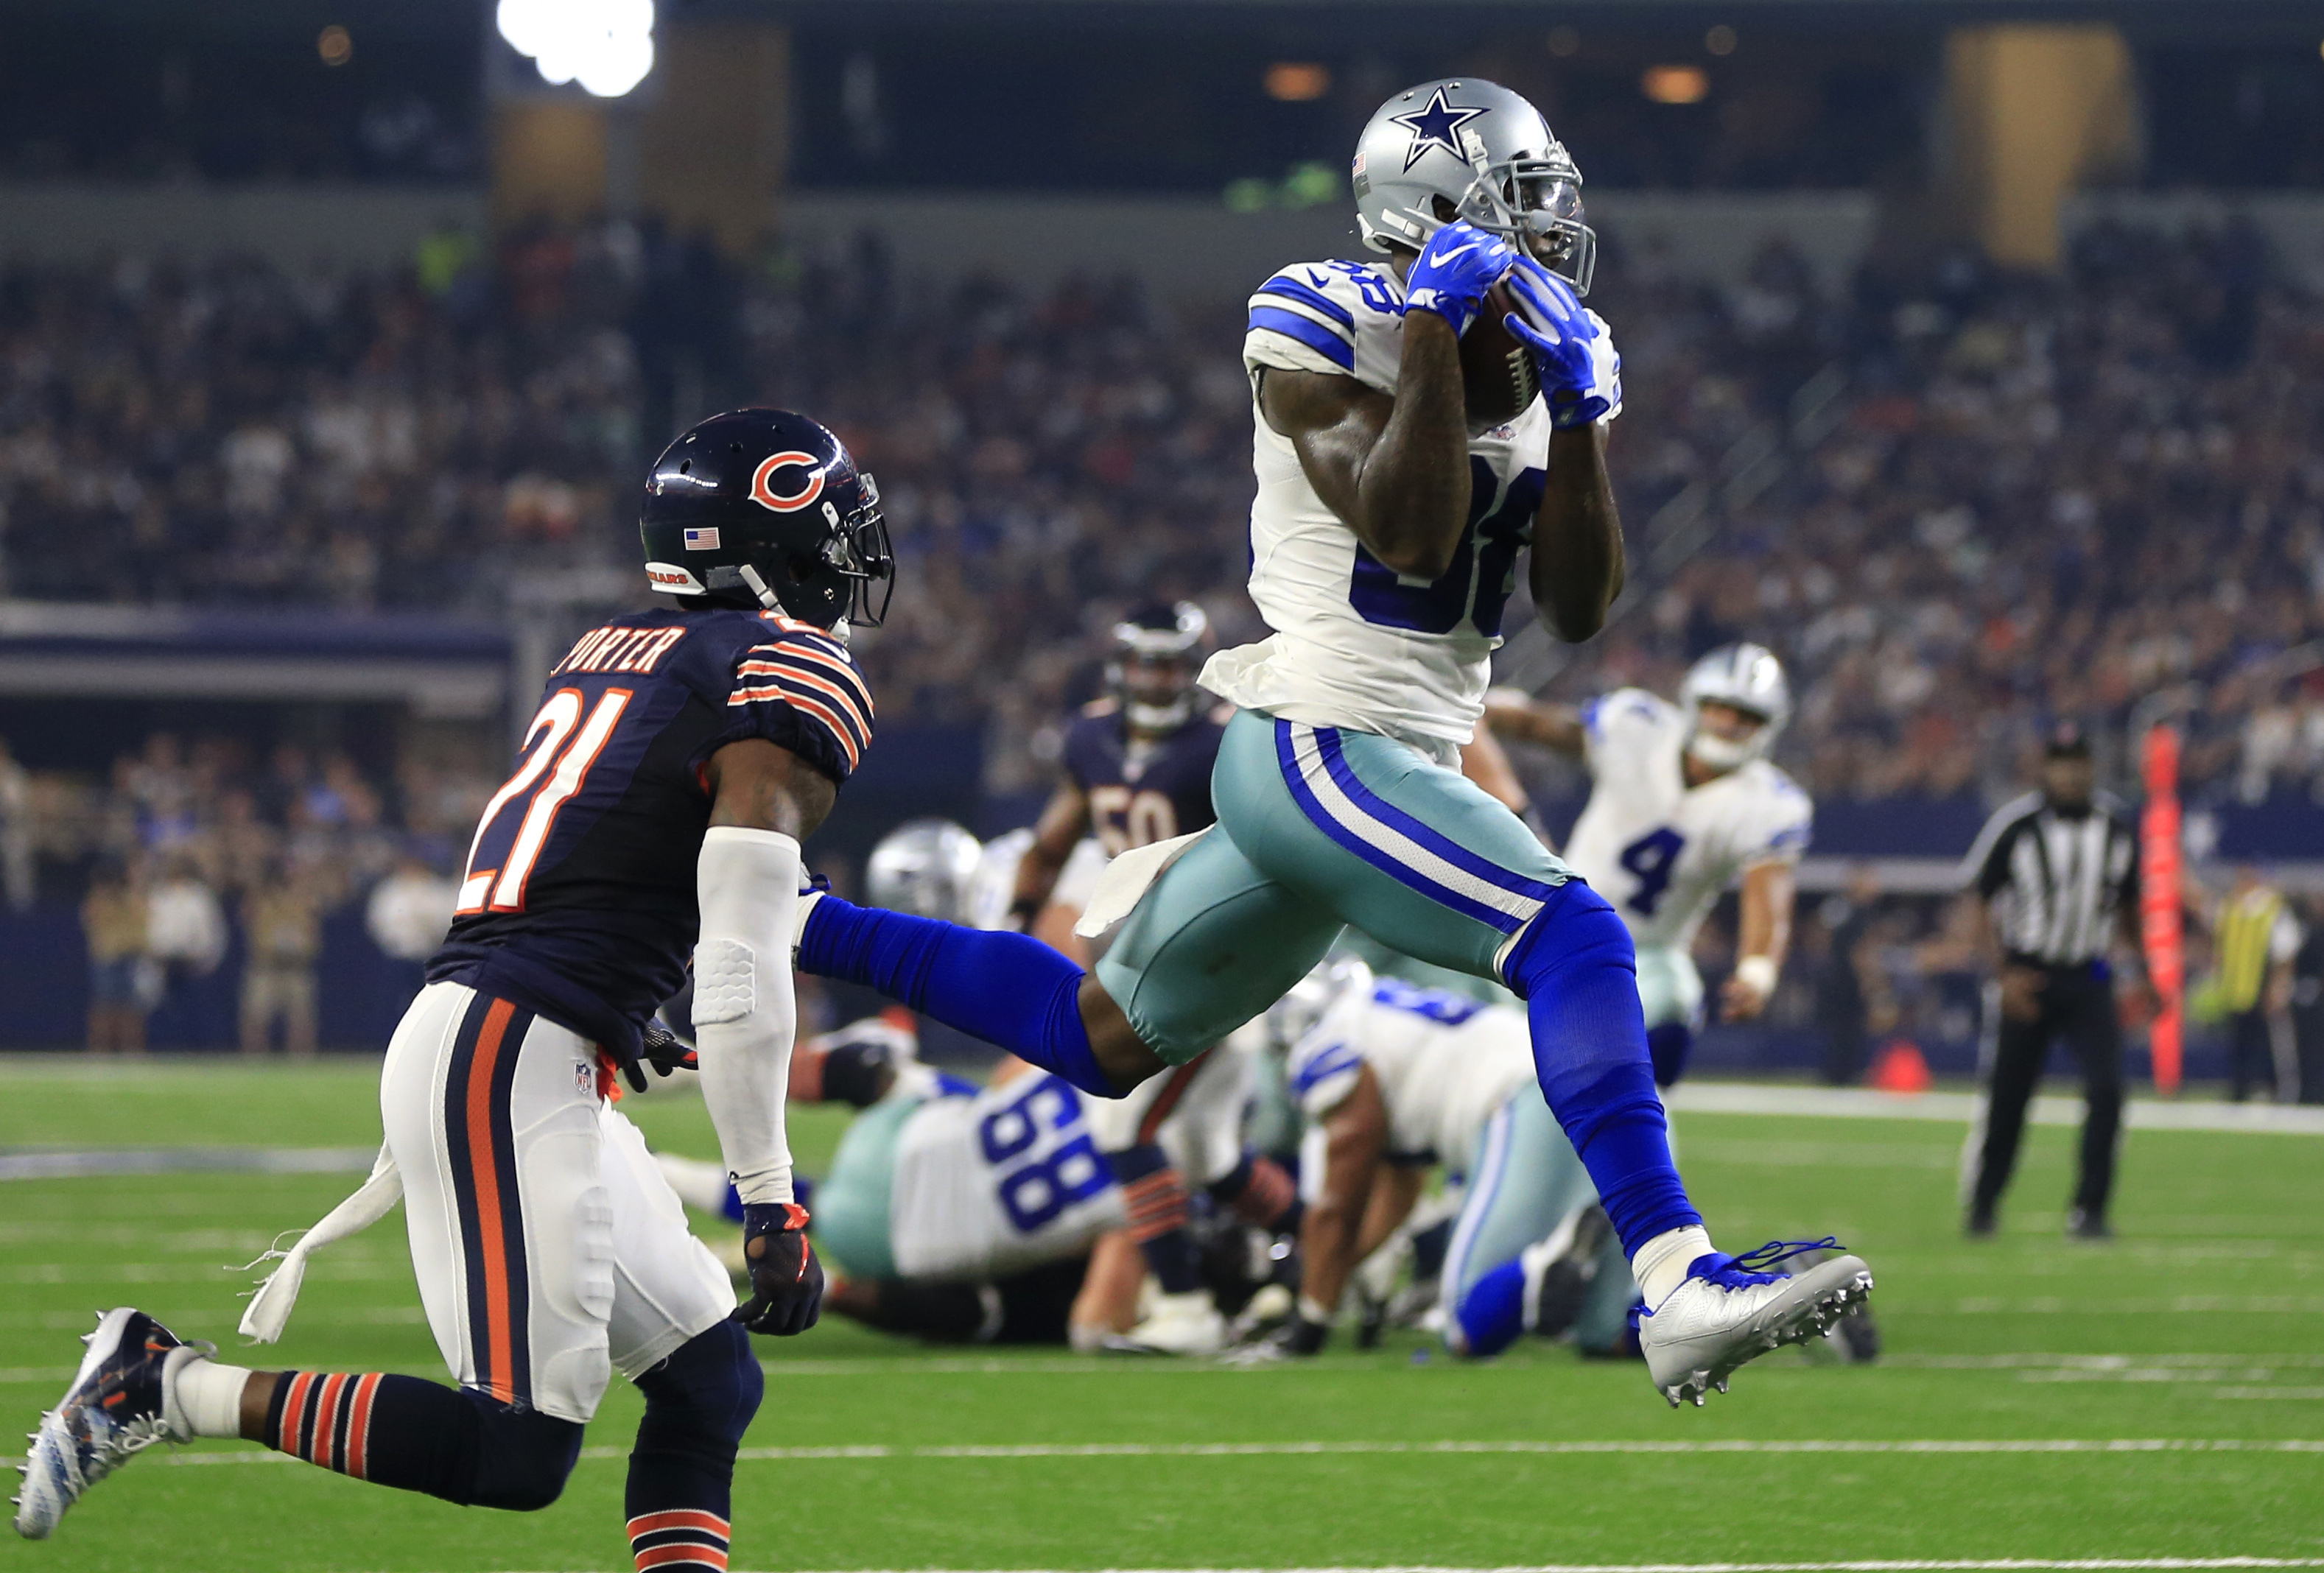 Chicago Bears cornerback Tracy Porter (21) defends as Dallas Cowboys wide receiver Dez Bryant (88) catches a pass thrown by Dak Prescott (4) for a touchdown in the second half of an NFL football game, Sunday, Sept. 25, 2016, in Arlington, Texas. (AP Photo